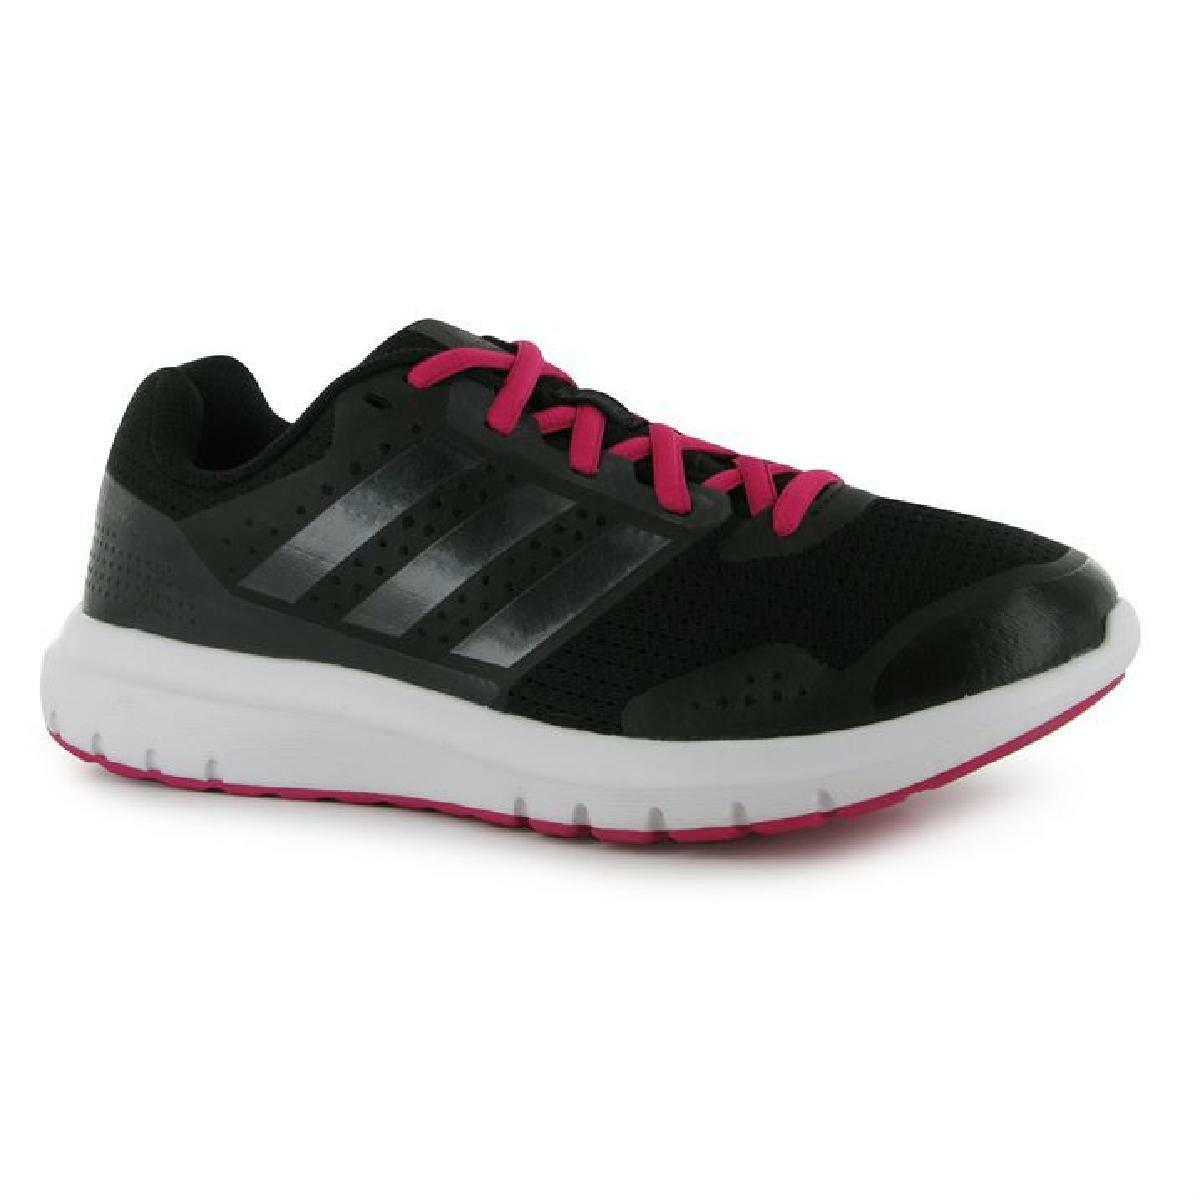 Adidas Ladies shoes Sneakers Running Size 38.7 Trainers Duramo 7